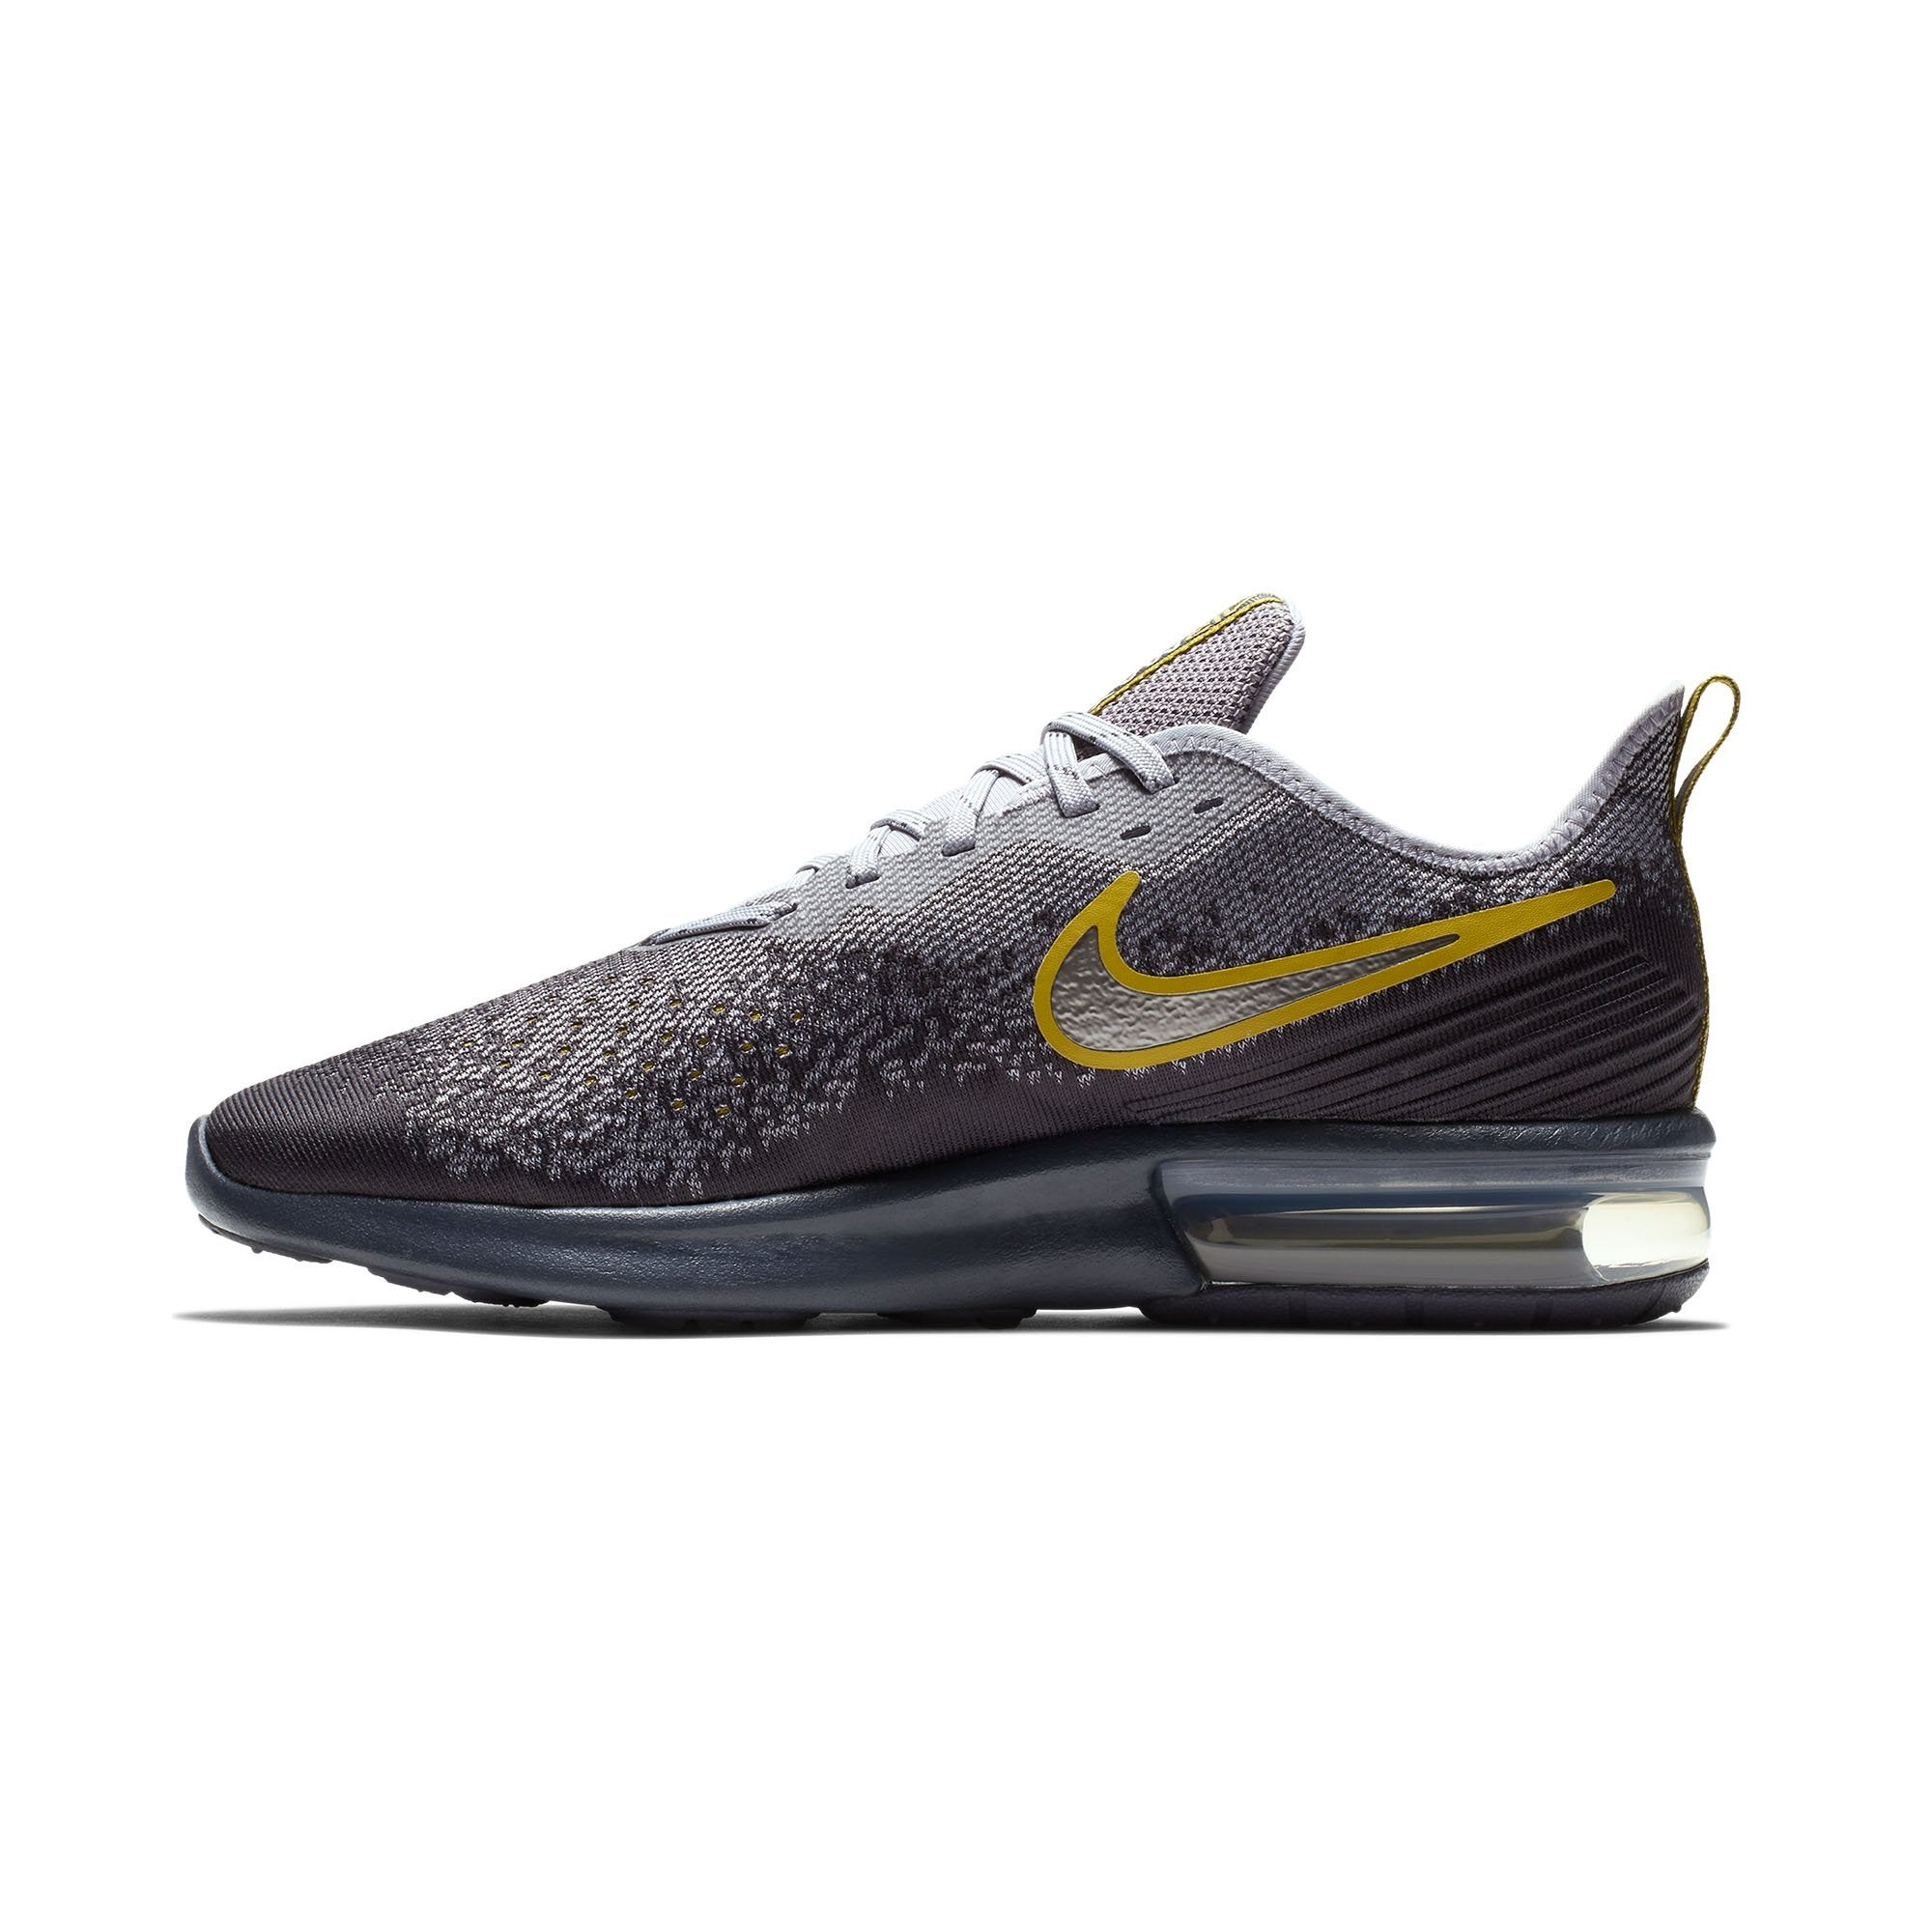 sports shoes a8ba3 80a8d Men Air Max Sequent 4 Running Shoes, Gridiron Mtlc Pewter Provence Purple